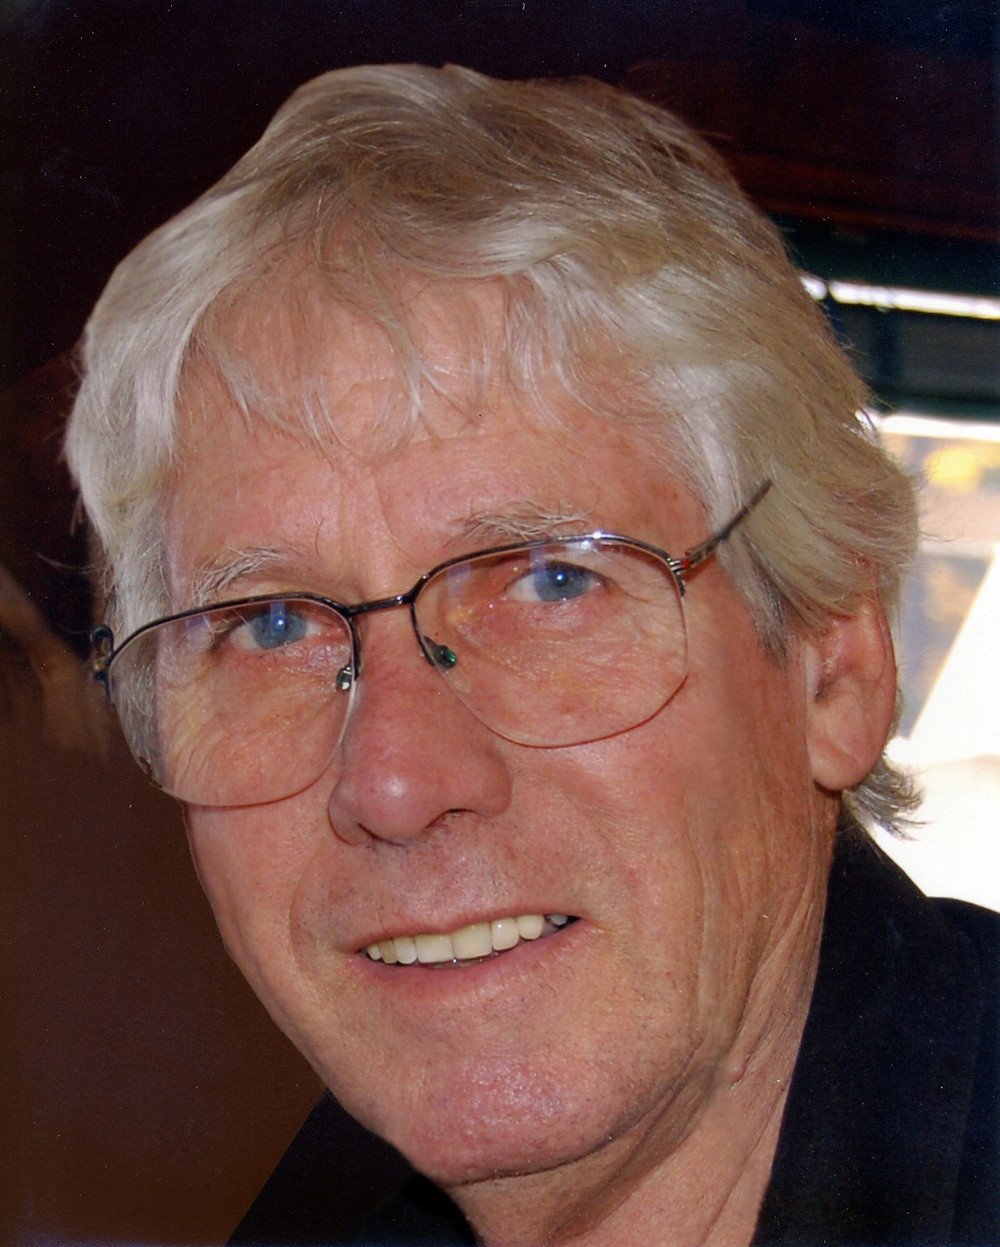 Burnett resident and architect Alan Hopkins lampooned a referendum to rename West Hull – now Chelsea – in 1981 by starting a campaign to rename the rest of the municipality Farking Blarkirgle. Photo courtesy Lisa Hopkins